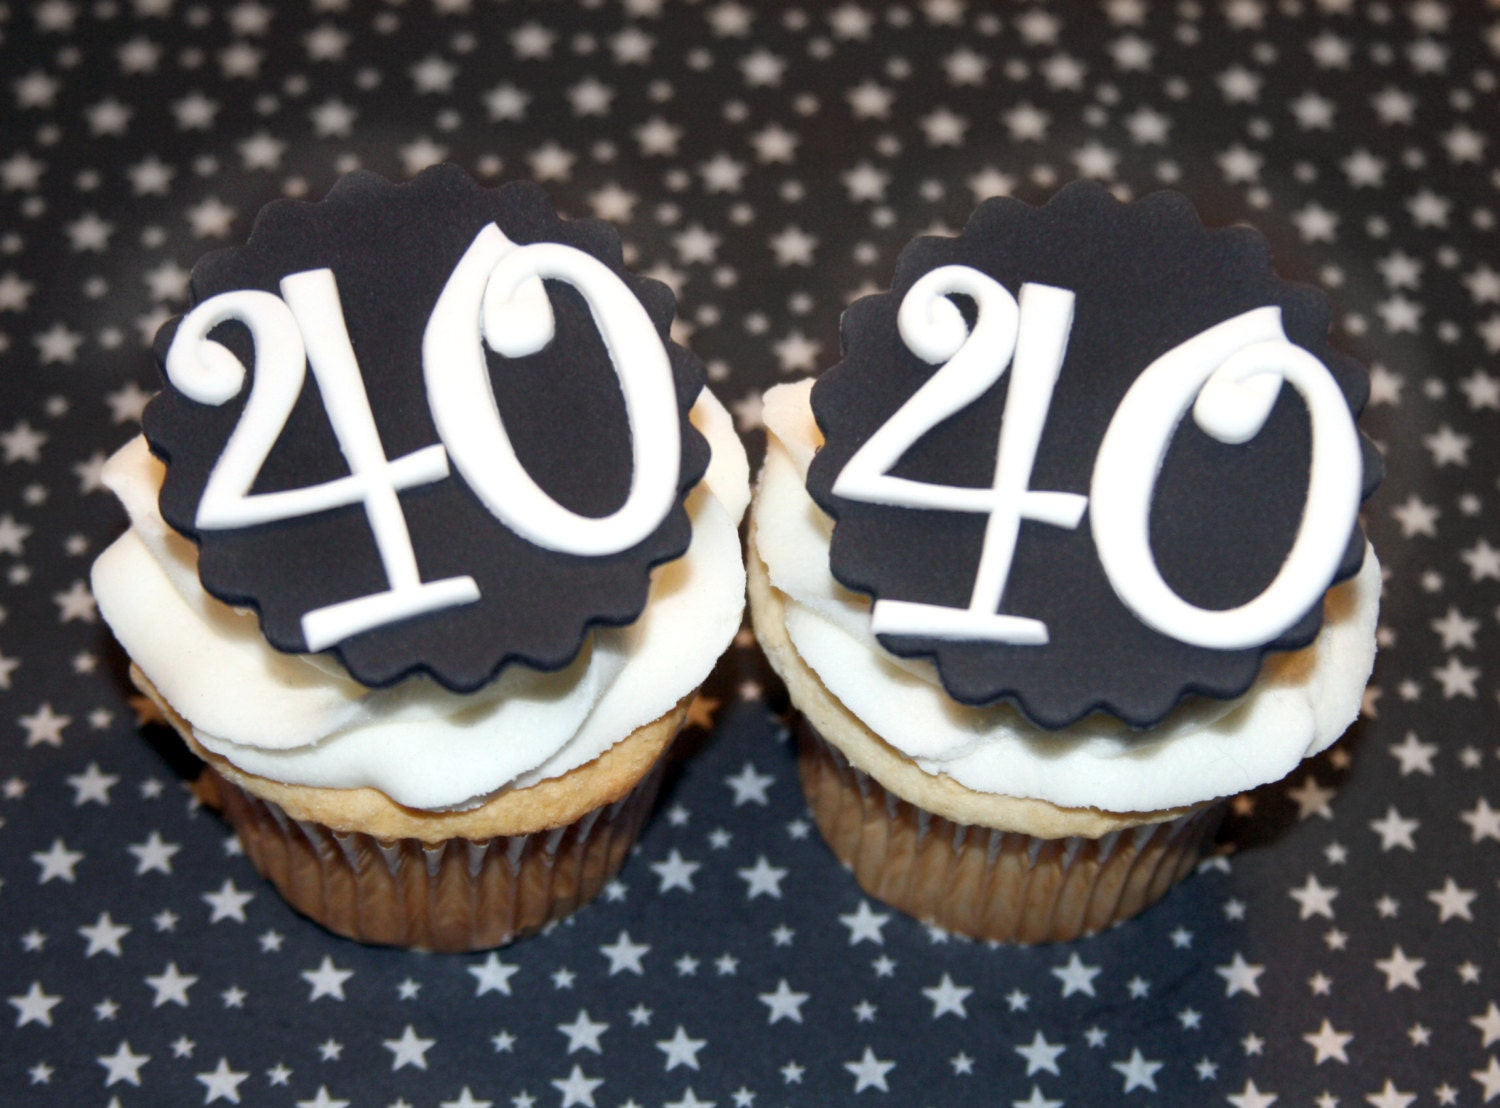 40th birthday cake decorations ideas